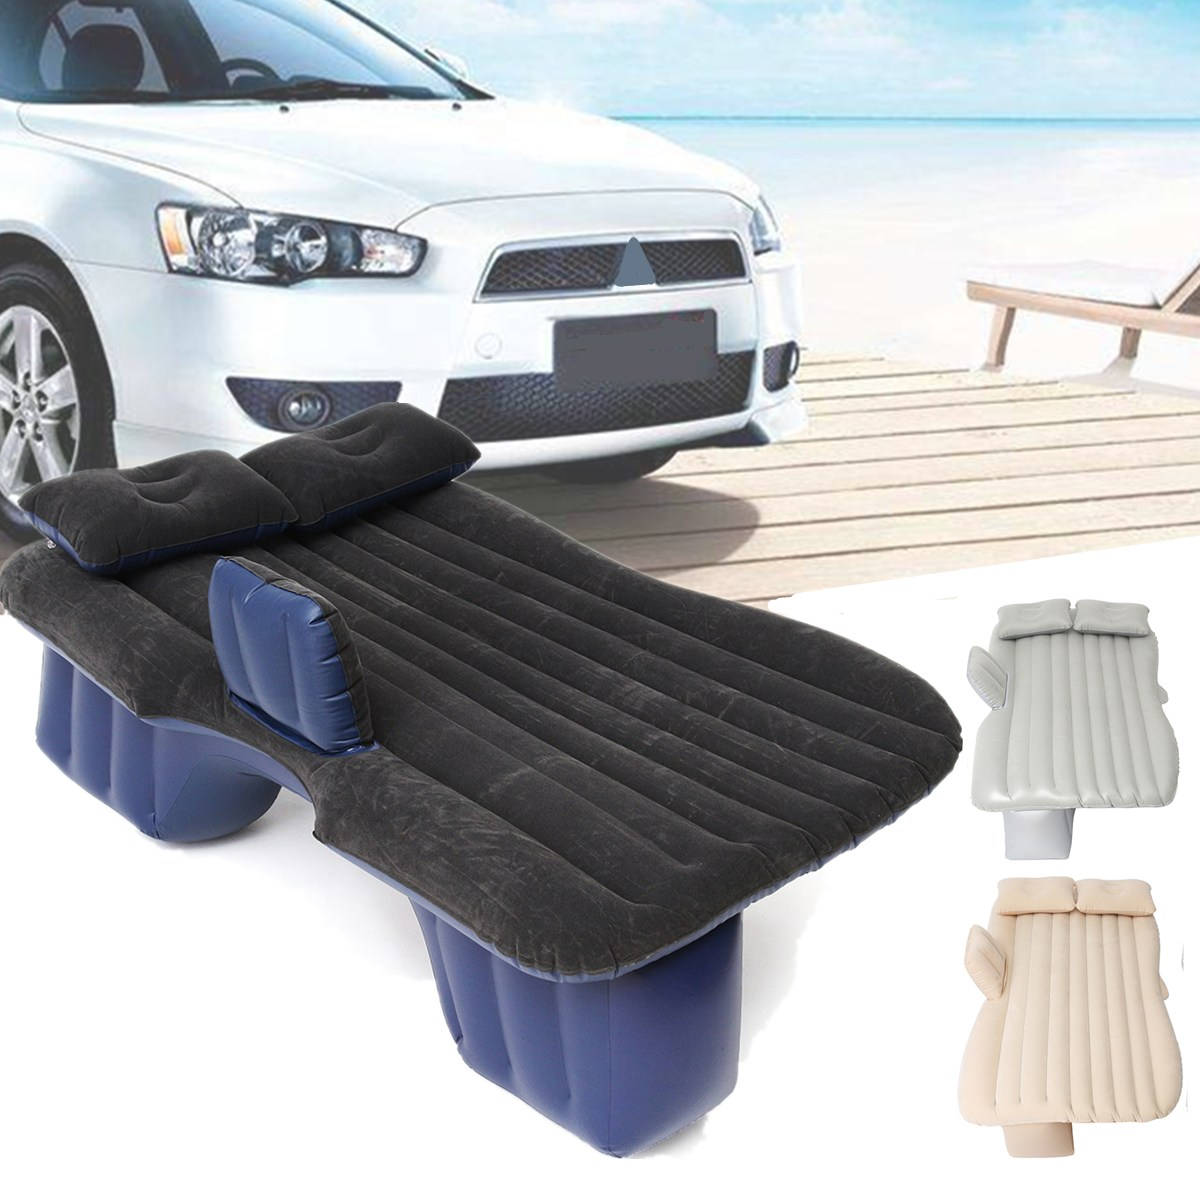 New Flocking Cloth Car Back Seat Cover Car Air Mattress Travel Bed Inflatable Mattress Air Bed Good Quality Inflatable Car Bed large size durable car back seat cover car air mattress travel bed moisture proof inflatable mattress air bed for car interior